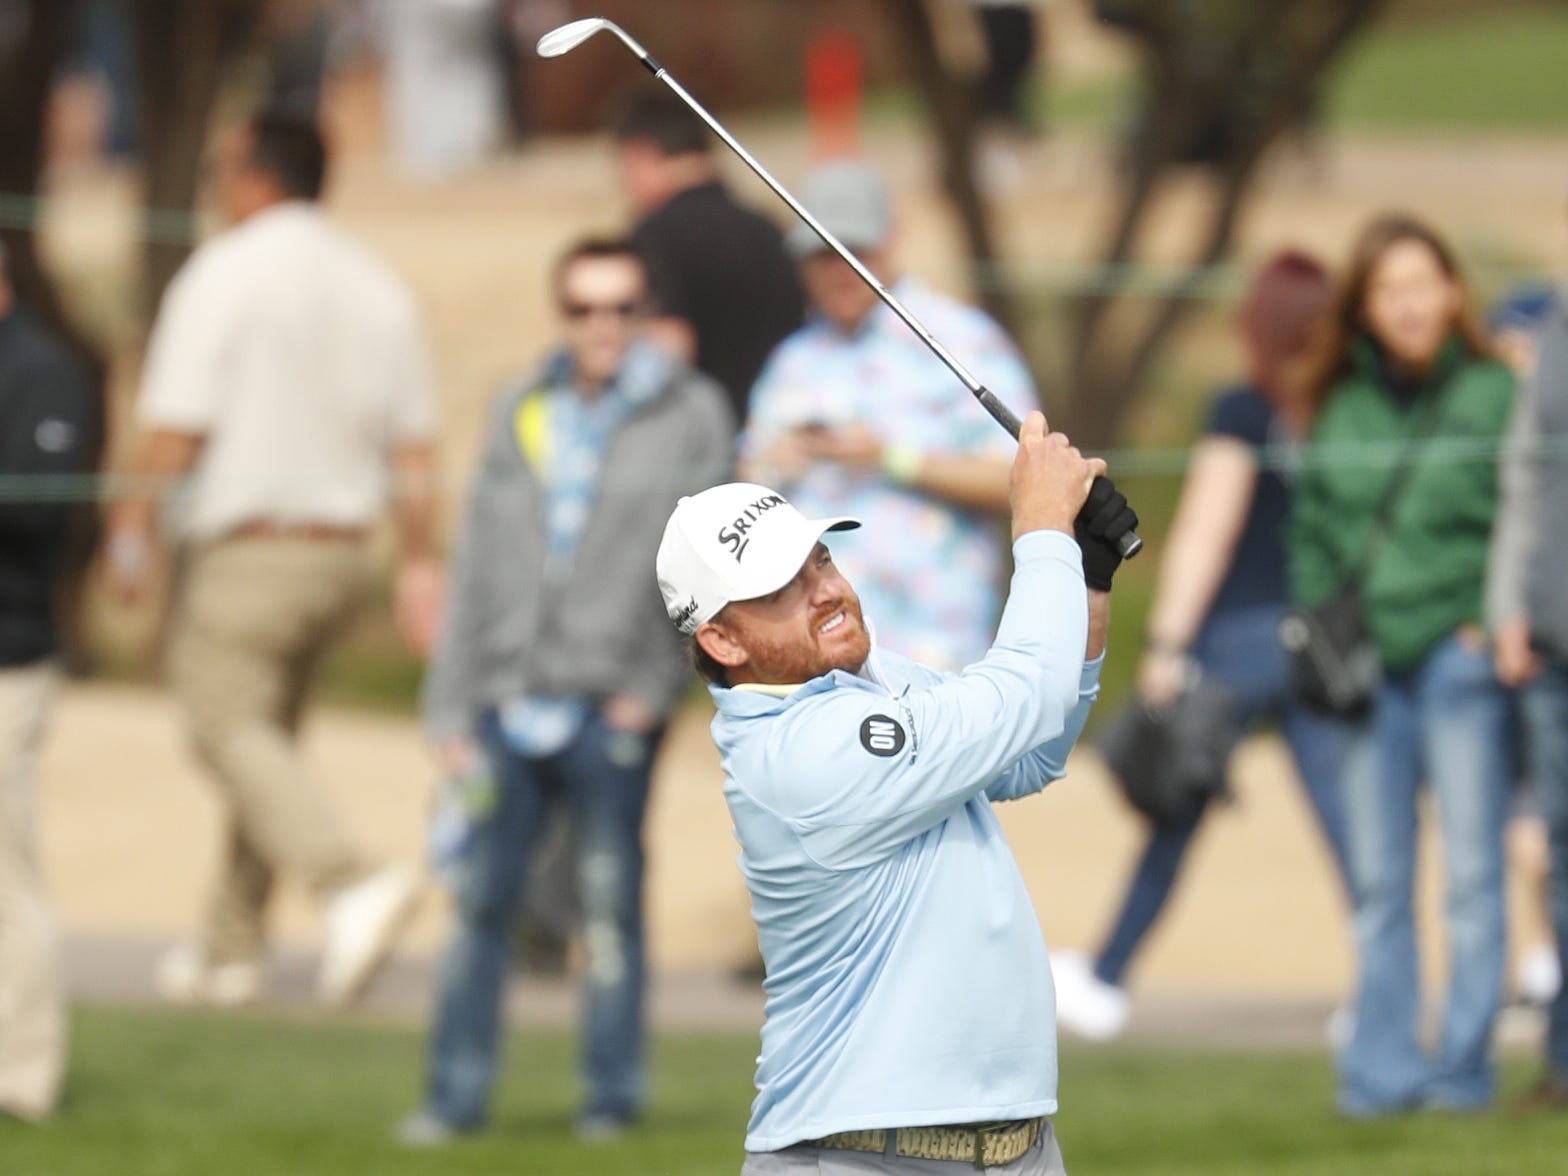 J.B. Holmes hits his third shot from the 9th fairway during the third round of the Waste Management Phoenix Open at TPC Scottsdale in Scottsdale, Ariz. on February 2, 2019.